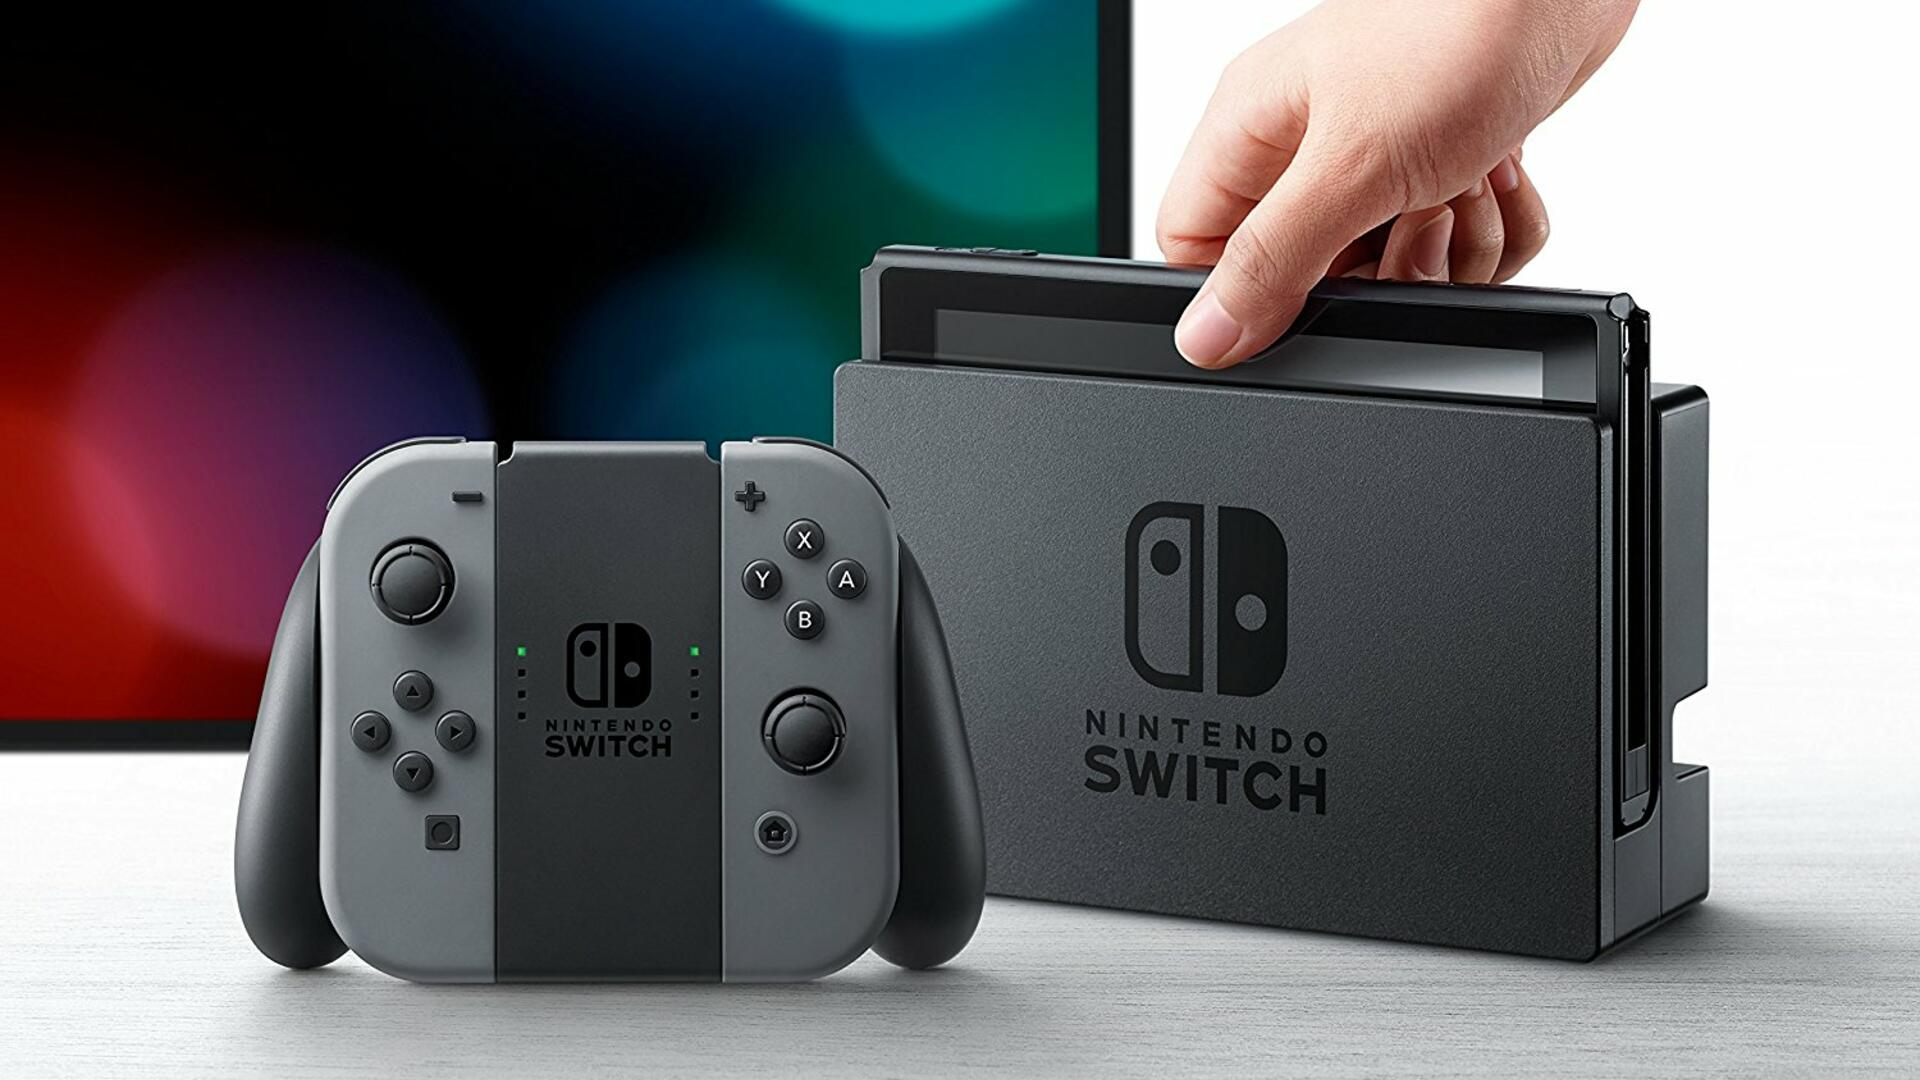 Report: Nintendo Planning New Switch Revision With Emphasis on Portability